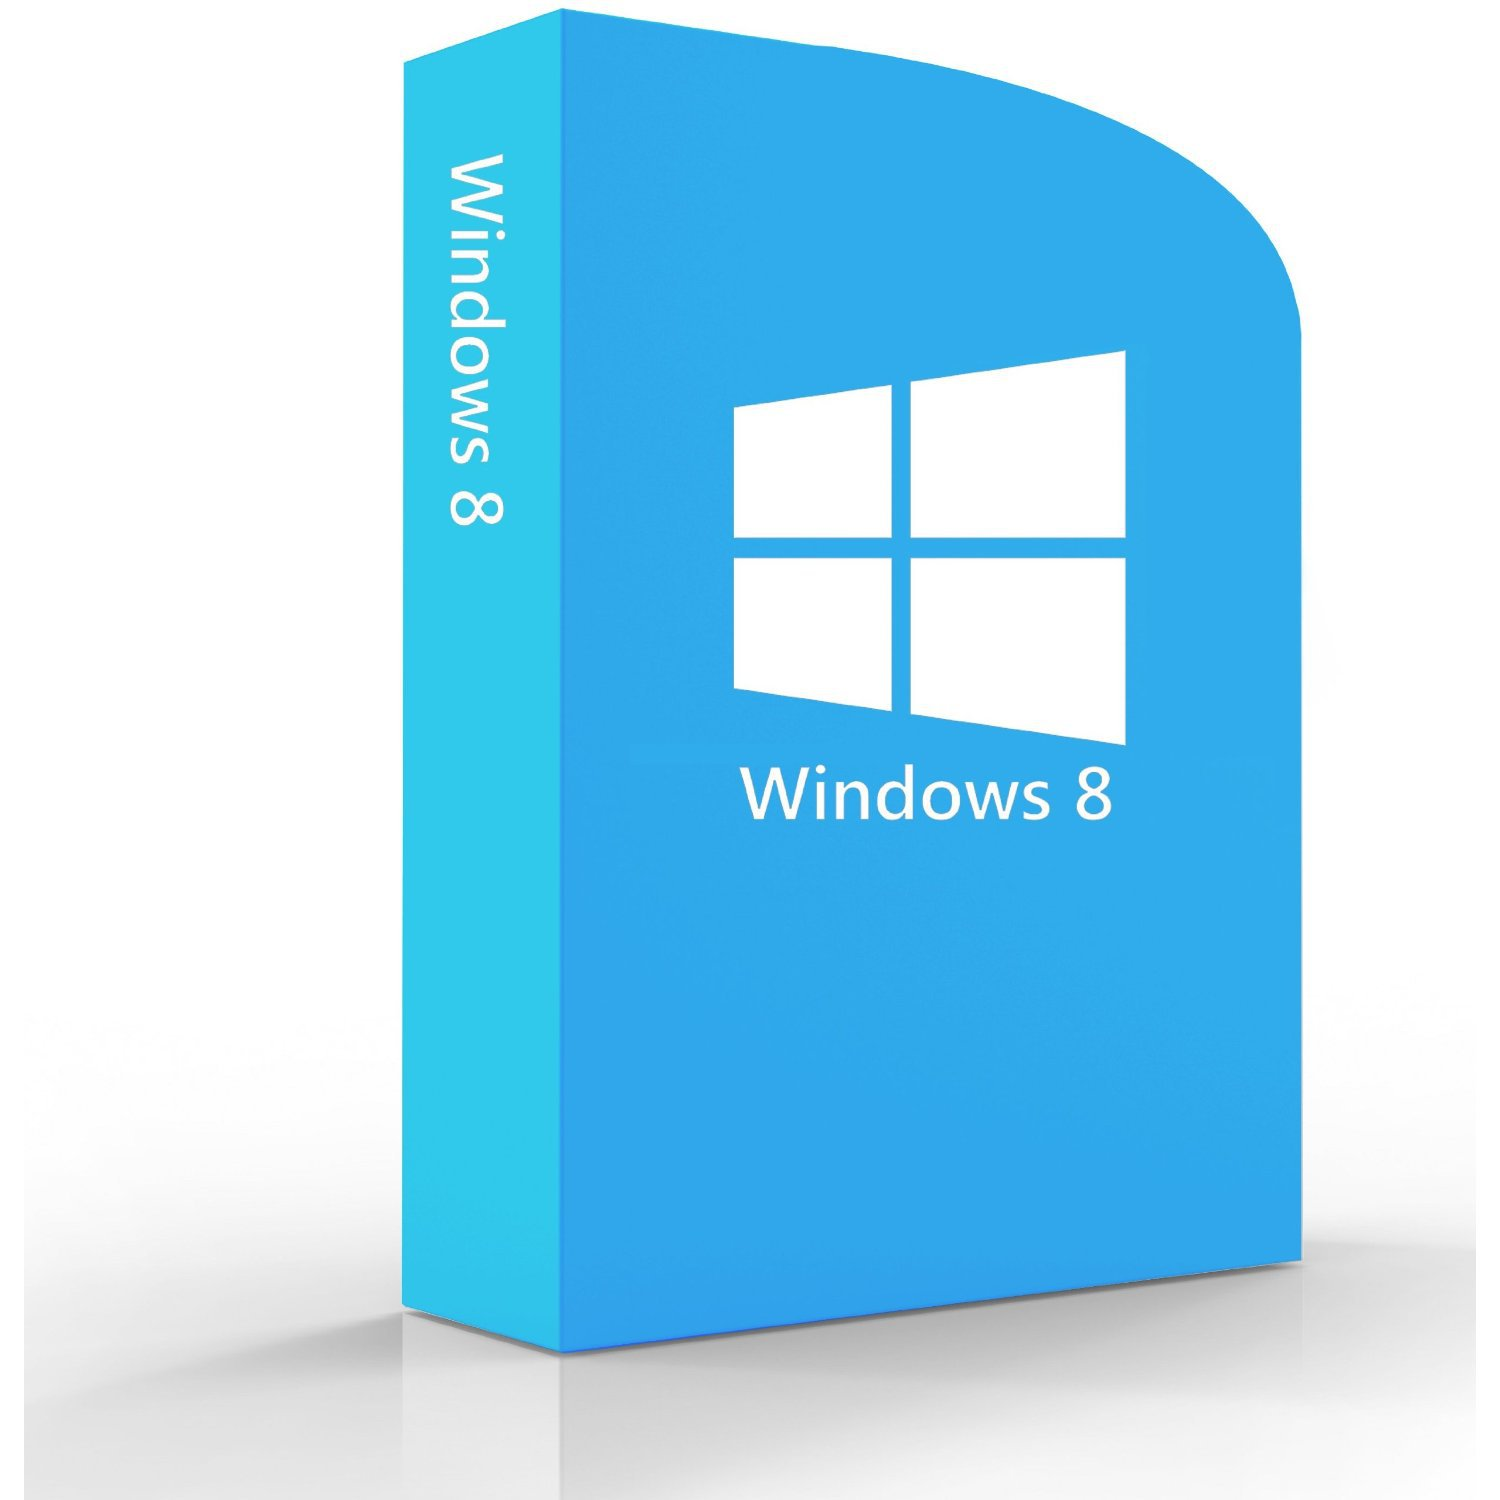 Pendekar pasuruan windows 8 2013 all in one x86 x64 for Windows direct